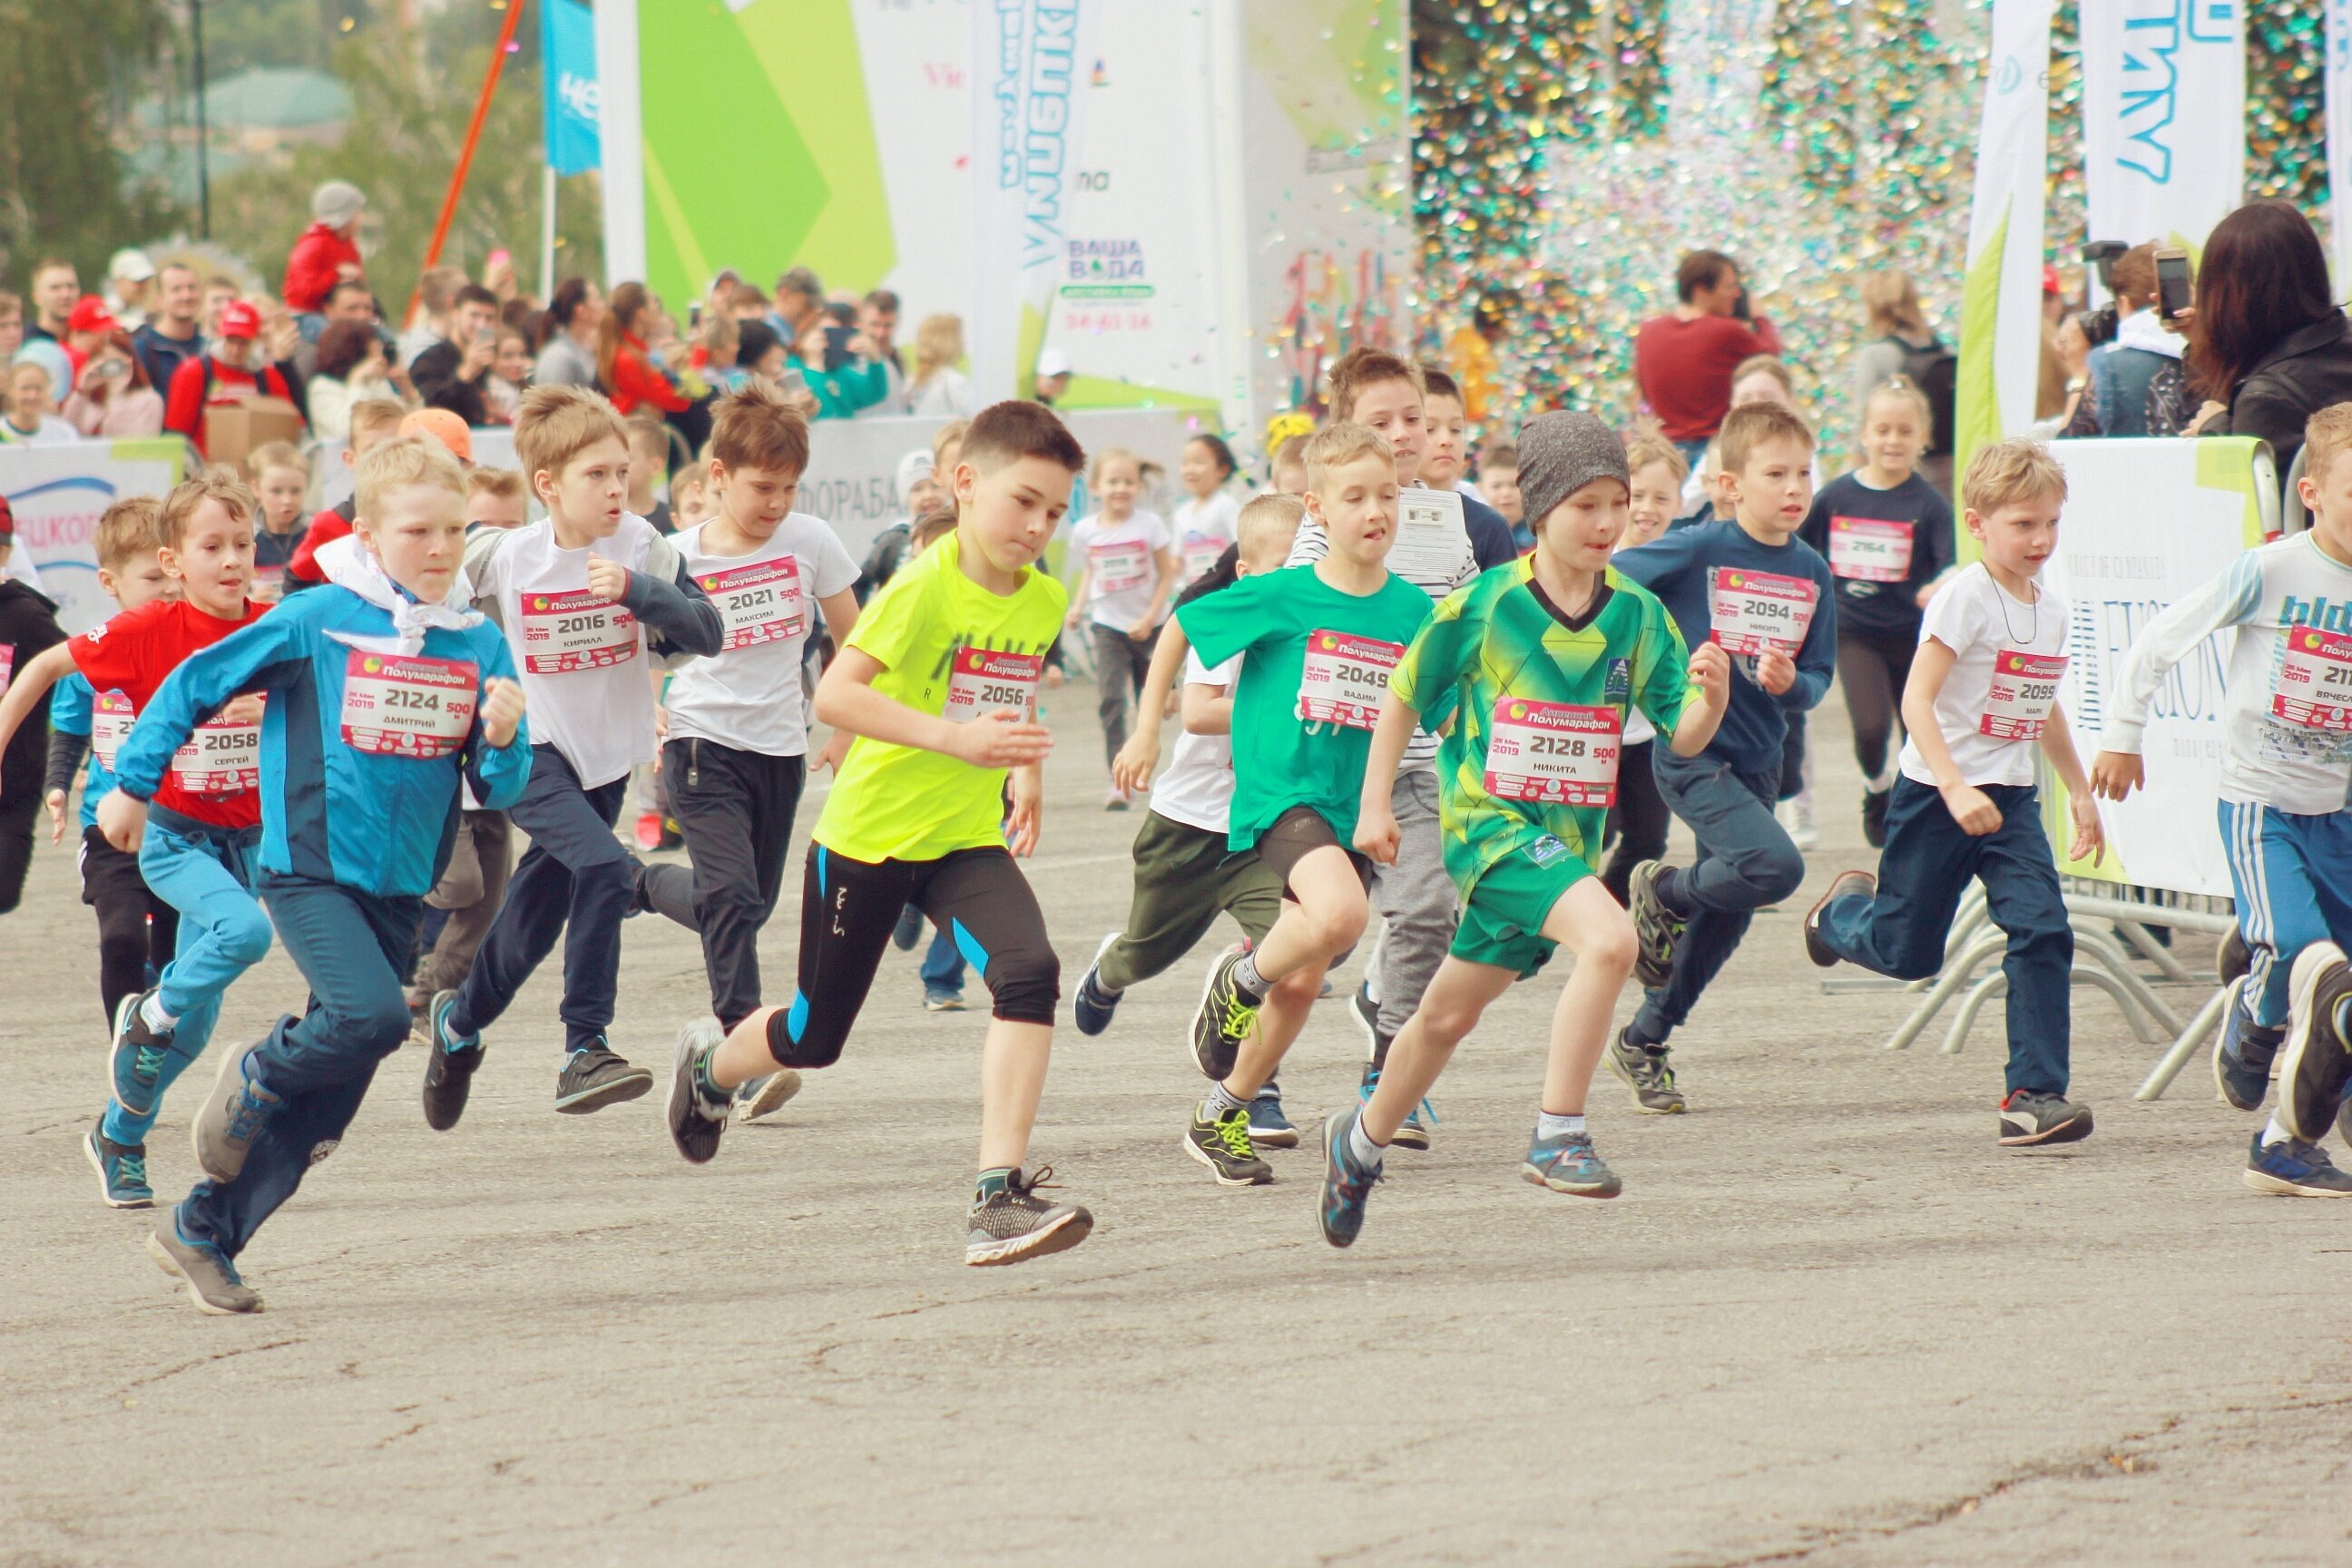 Children's race